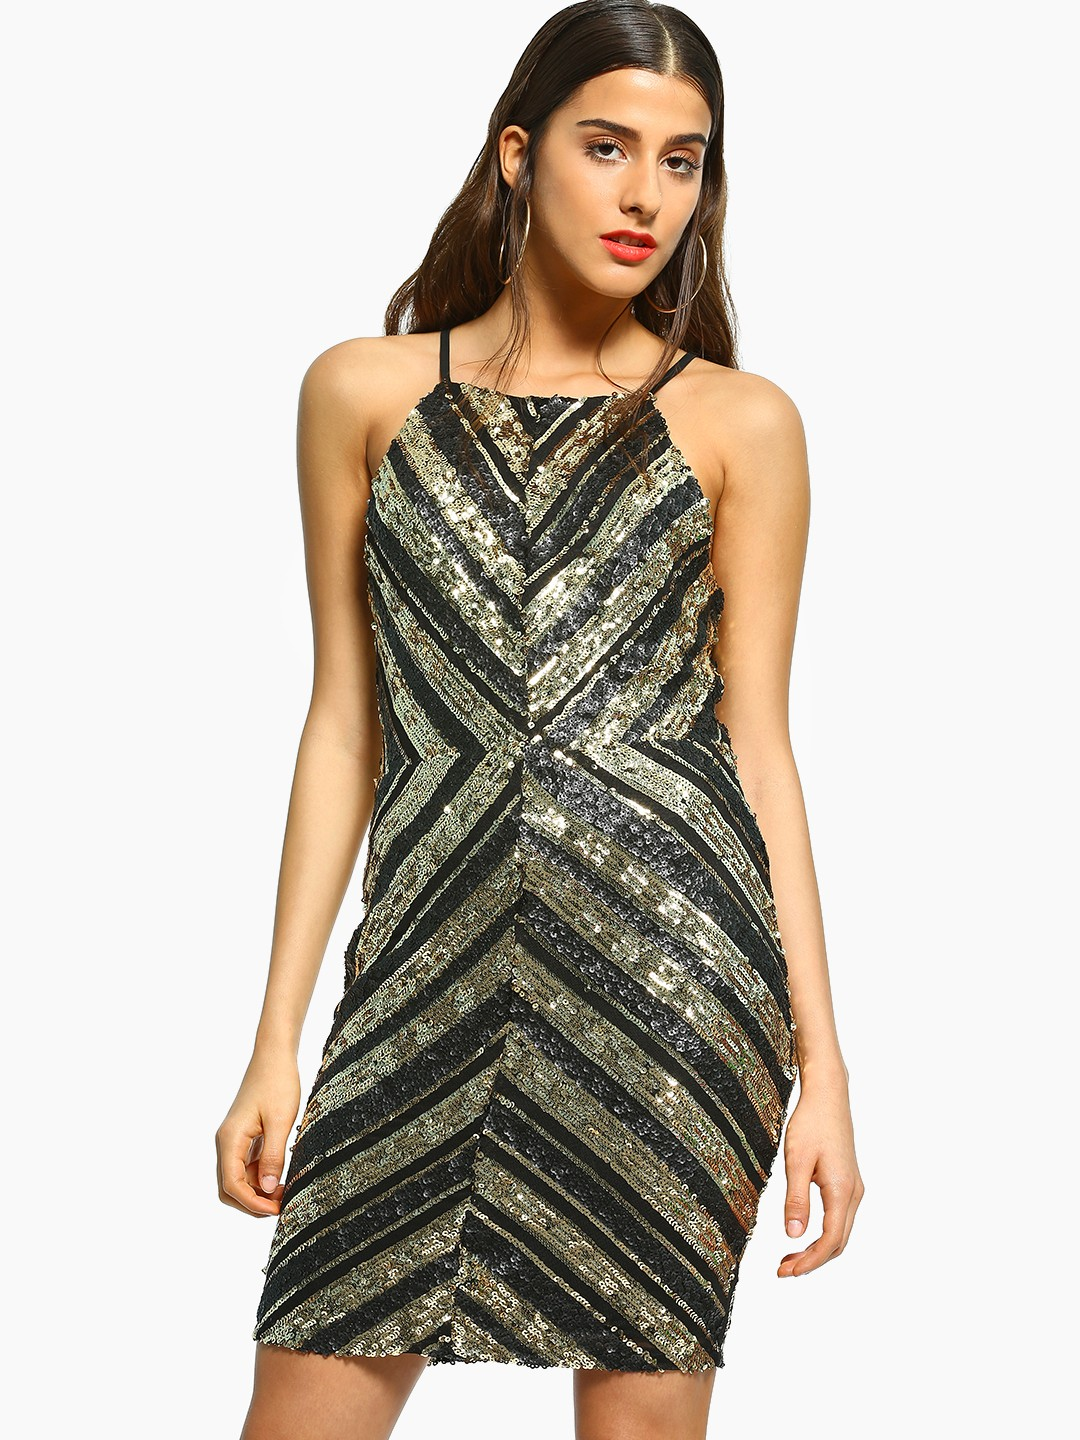 FP & CO Black Chevron Sequin Bodycon Dress 1